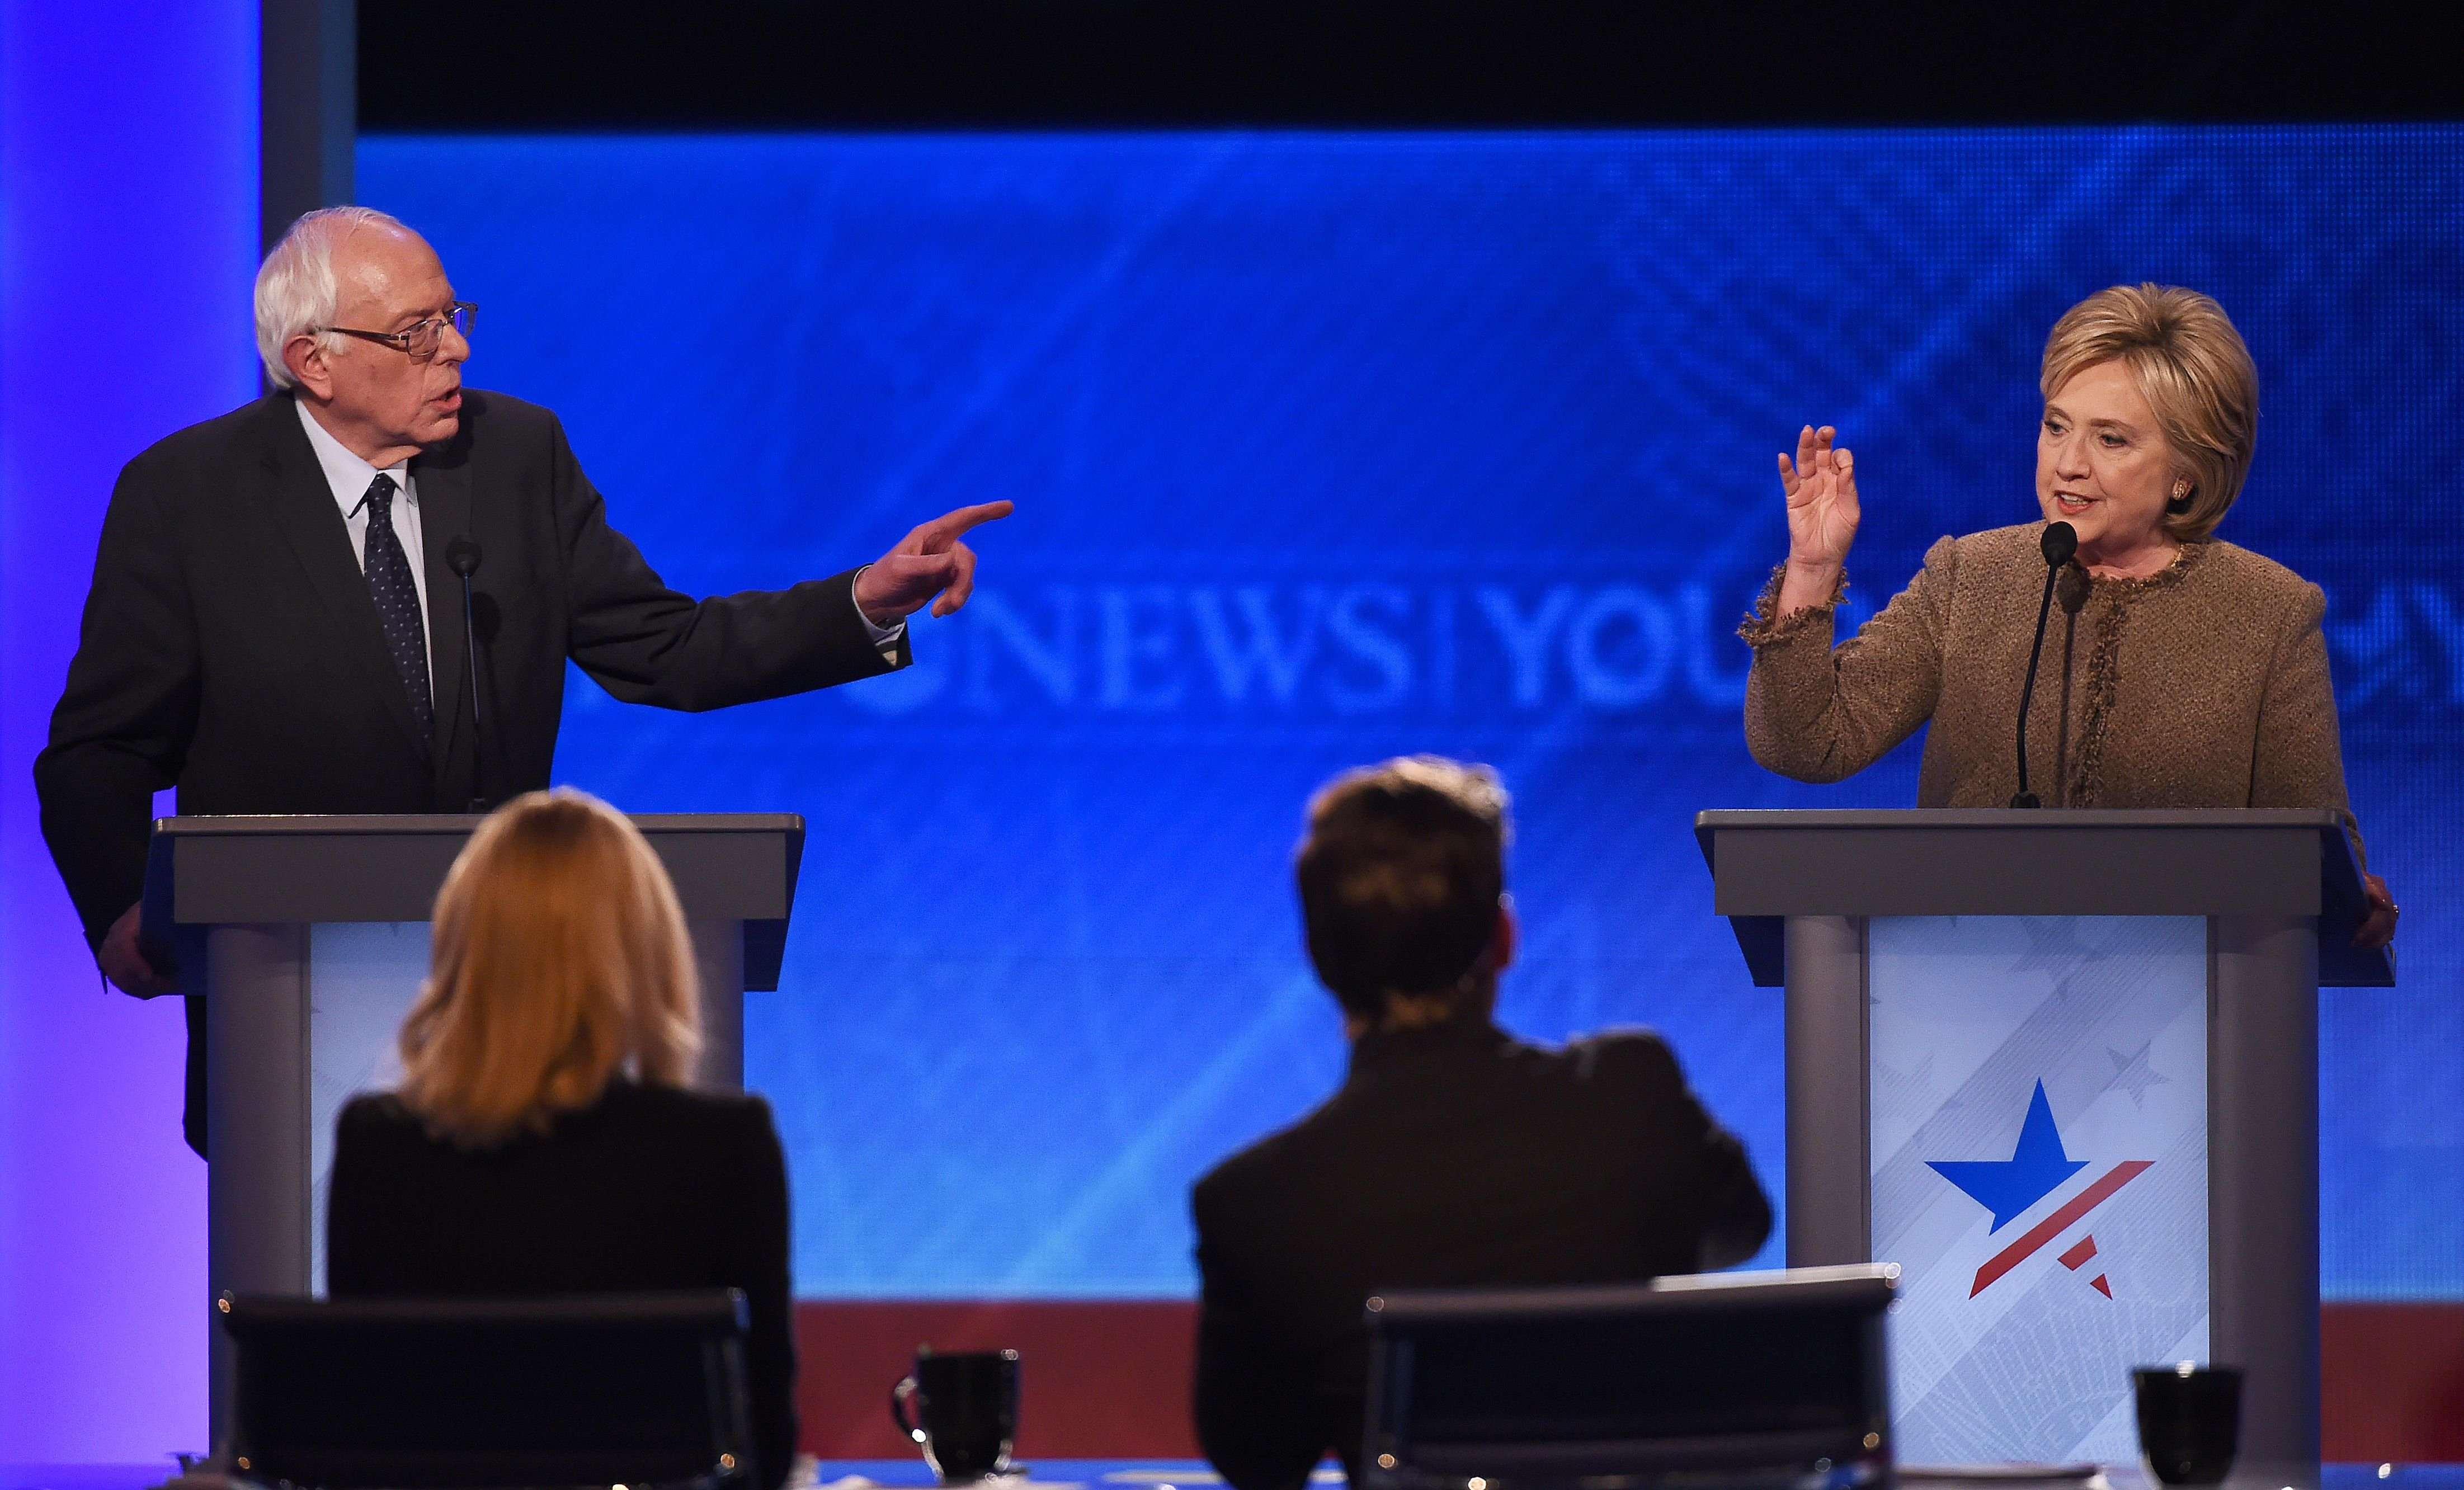 Hillary Clinton, right, and Bernie Sanders participate in the Democratic Presidential Debate hosted by ABC News at Saint Anselm College in Manchester, New Hampshire, on Dec. 19, 2015.